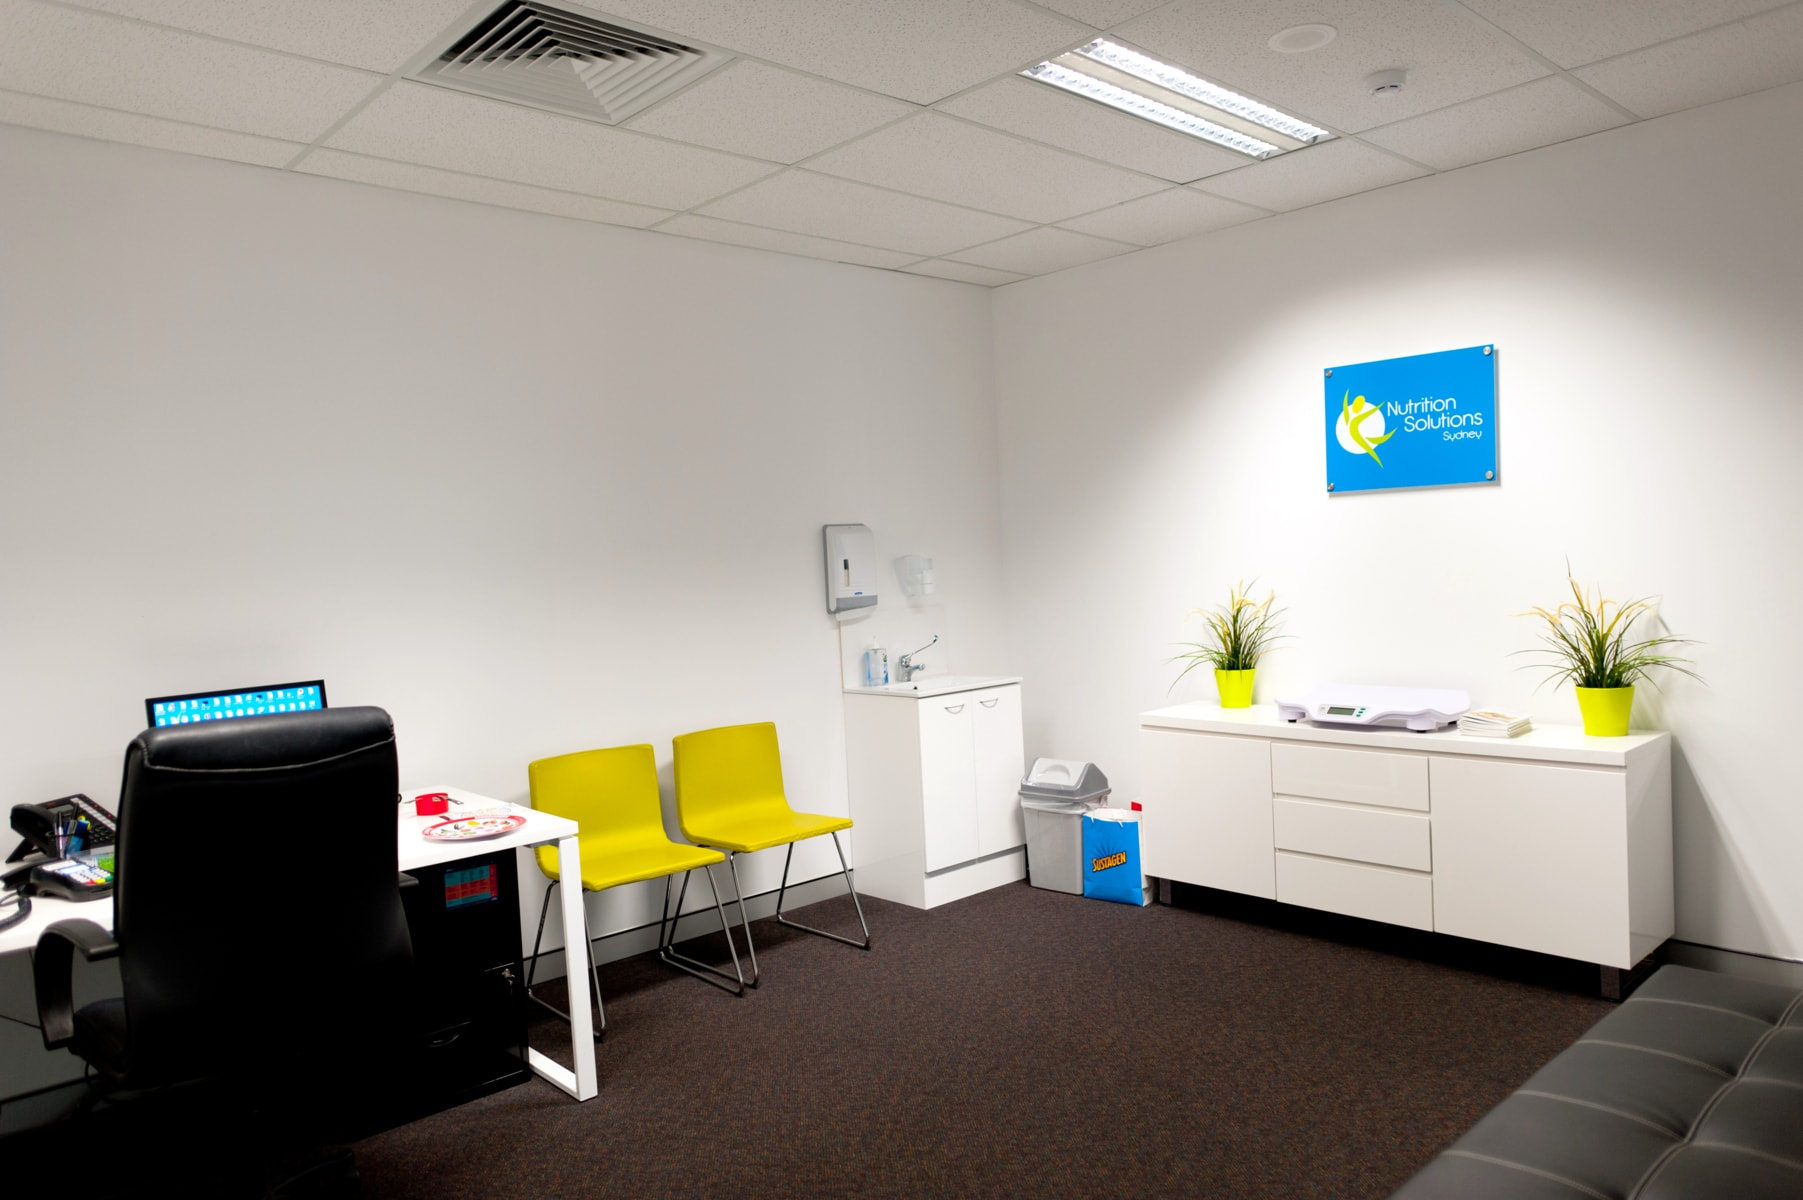 Miranda family health services